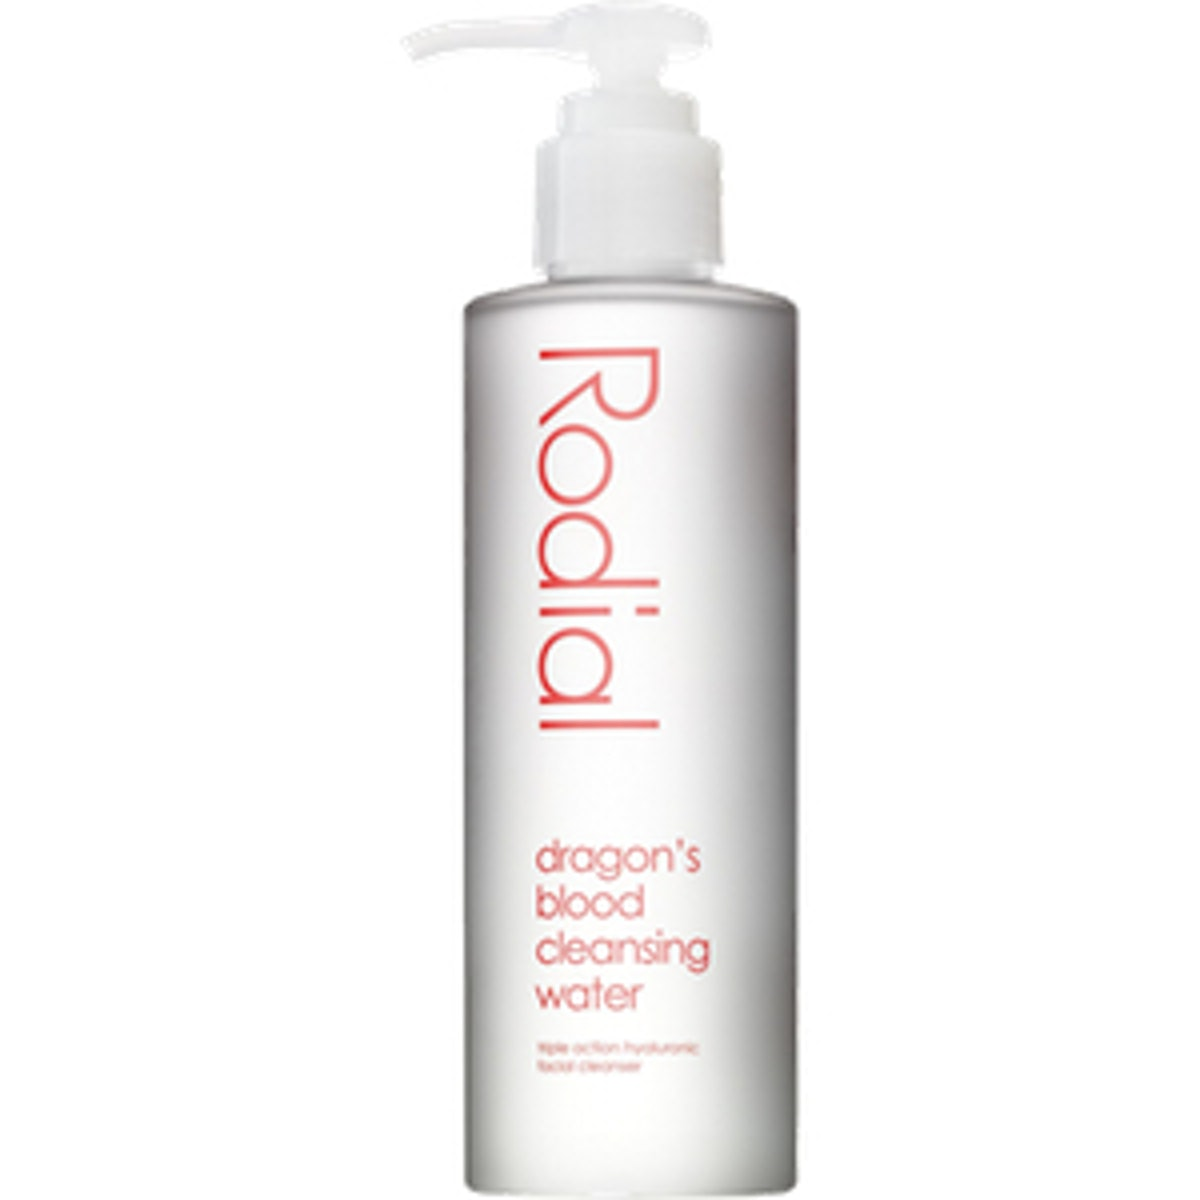 Dragon's Blood Cleansing Water